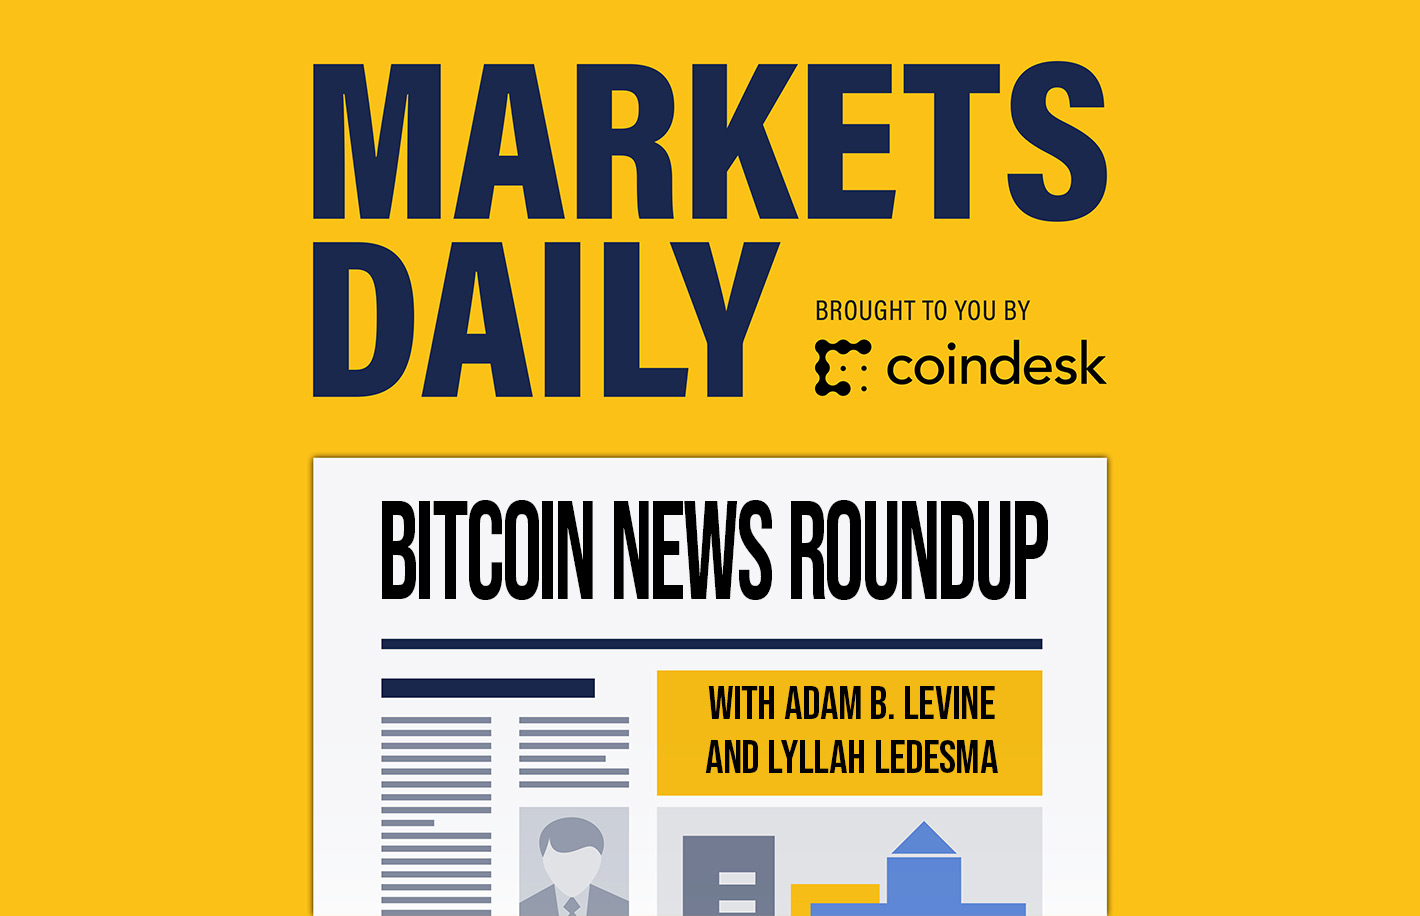 Bitcoin News Roundup for July 10, 2020